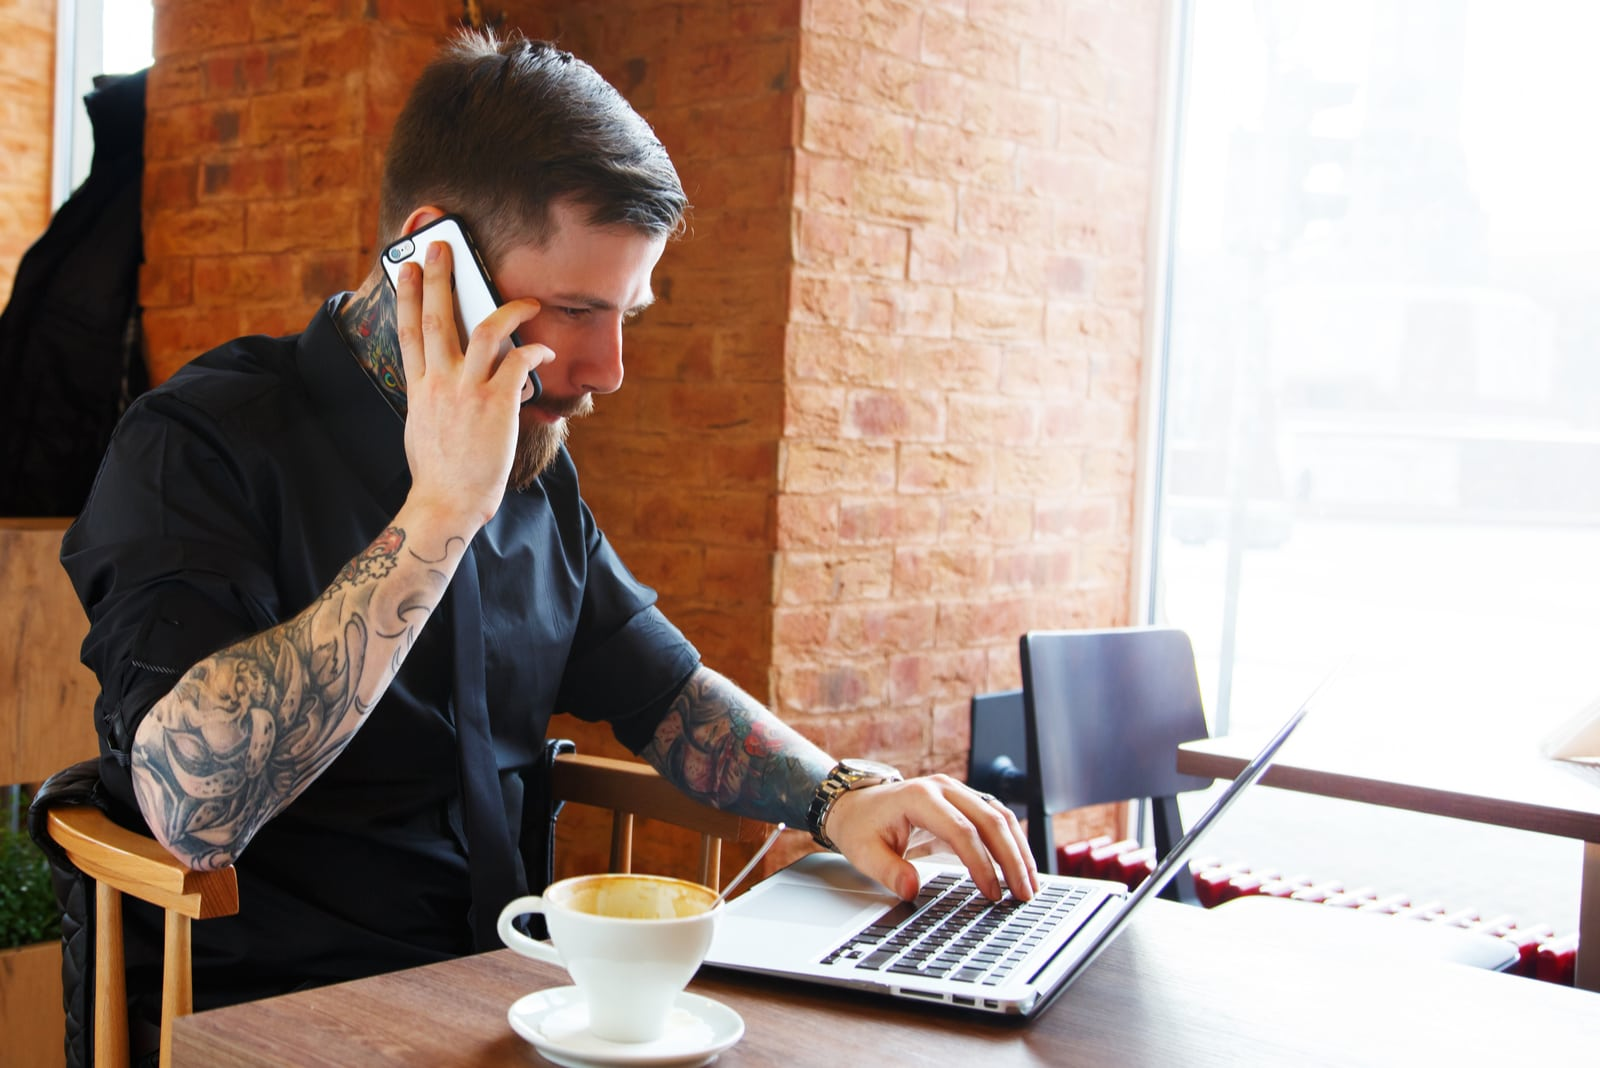 man working on laptop and talking on his phone